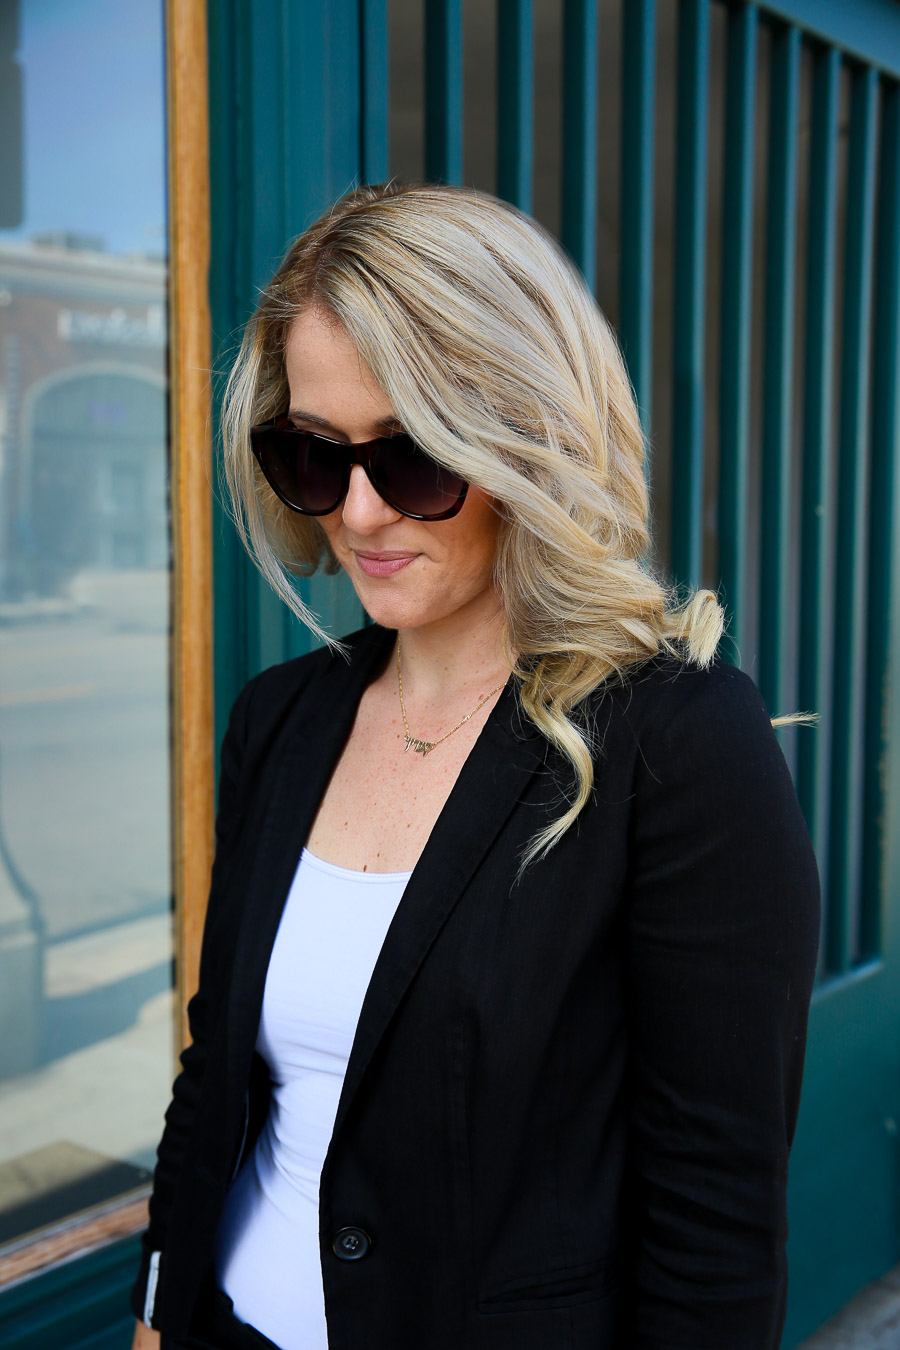 Black Blazer and Wide Leg Pants Outfit for Work